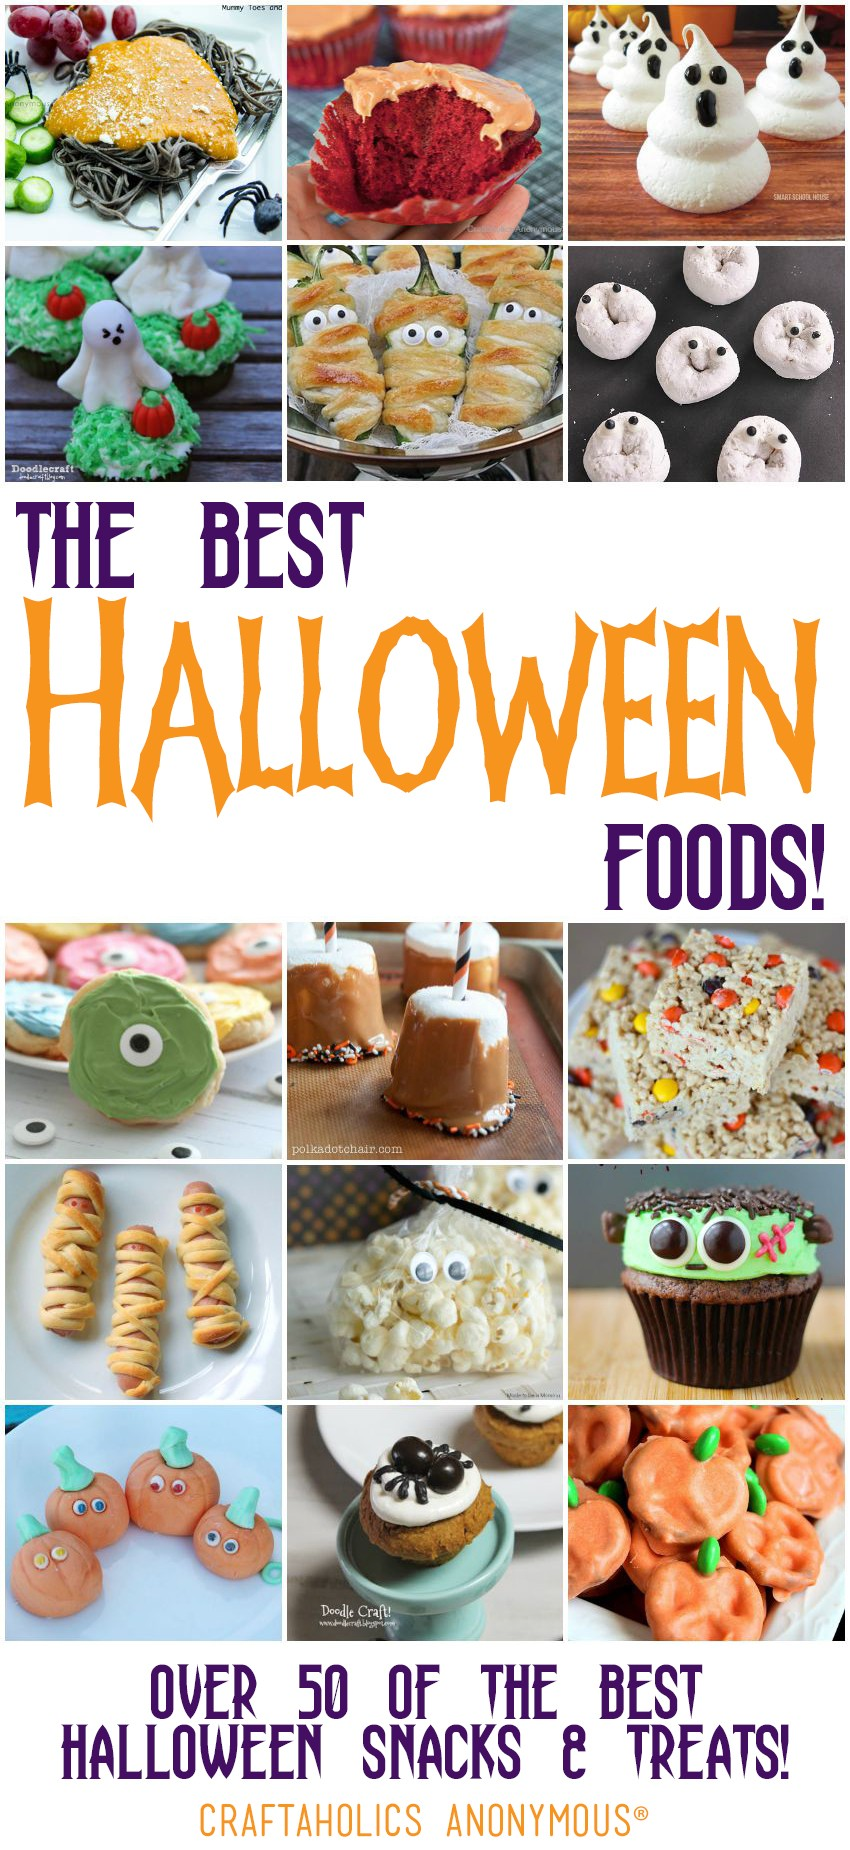 50 of the Best Halloween Foods | Craftaholics Anonymous®